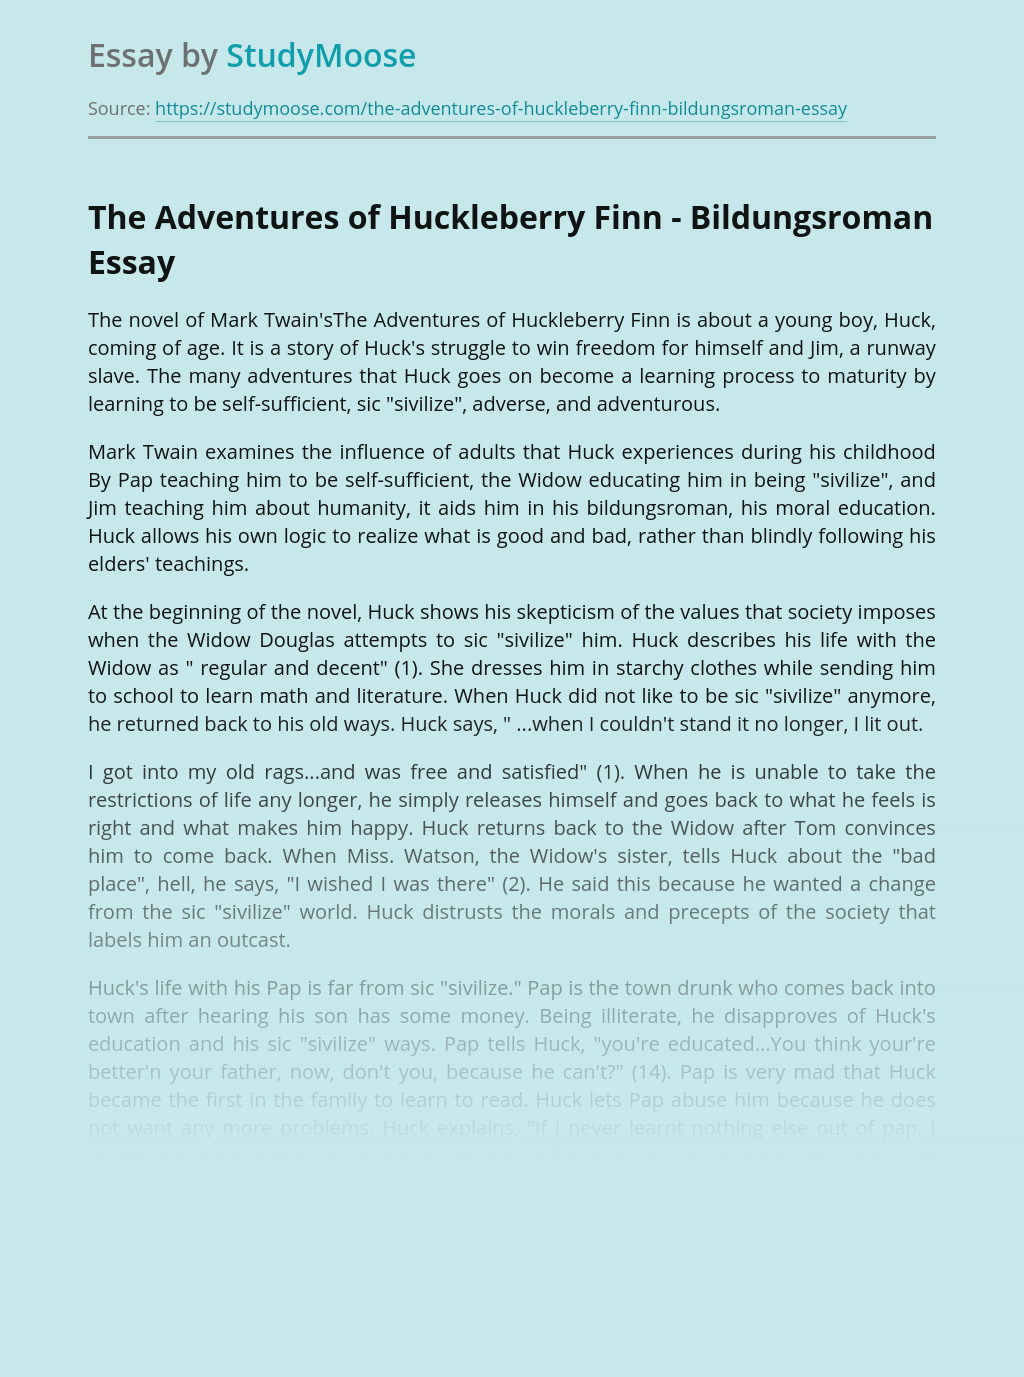 The Adventures of Huckleberry Finn - Bildungsroman